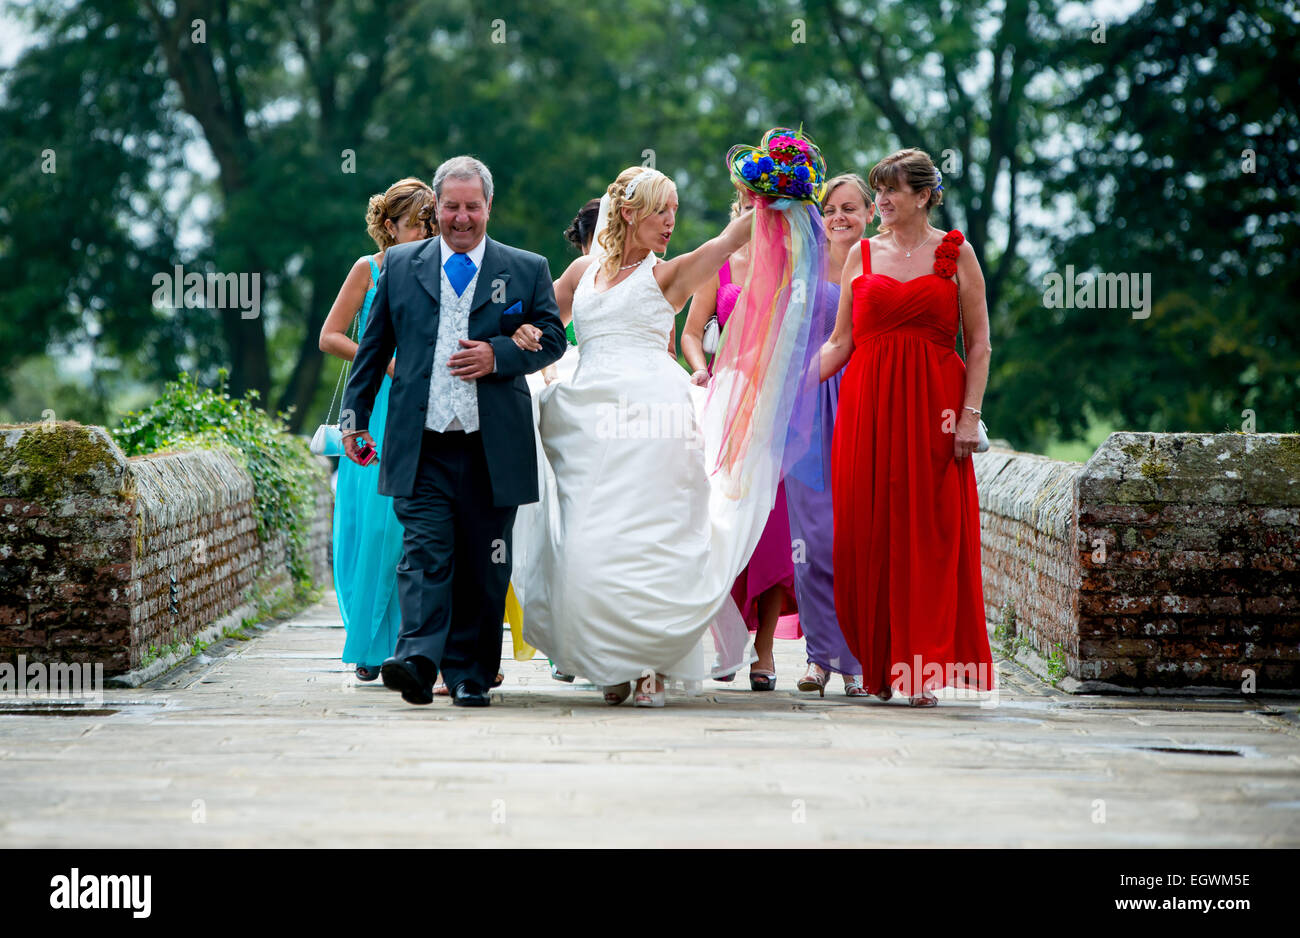 A bride dances excitedly as she walks towards her wedding ceremony with father of the bride and bridesmaids. Stock Photo